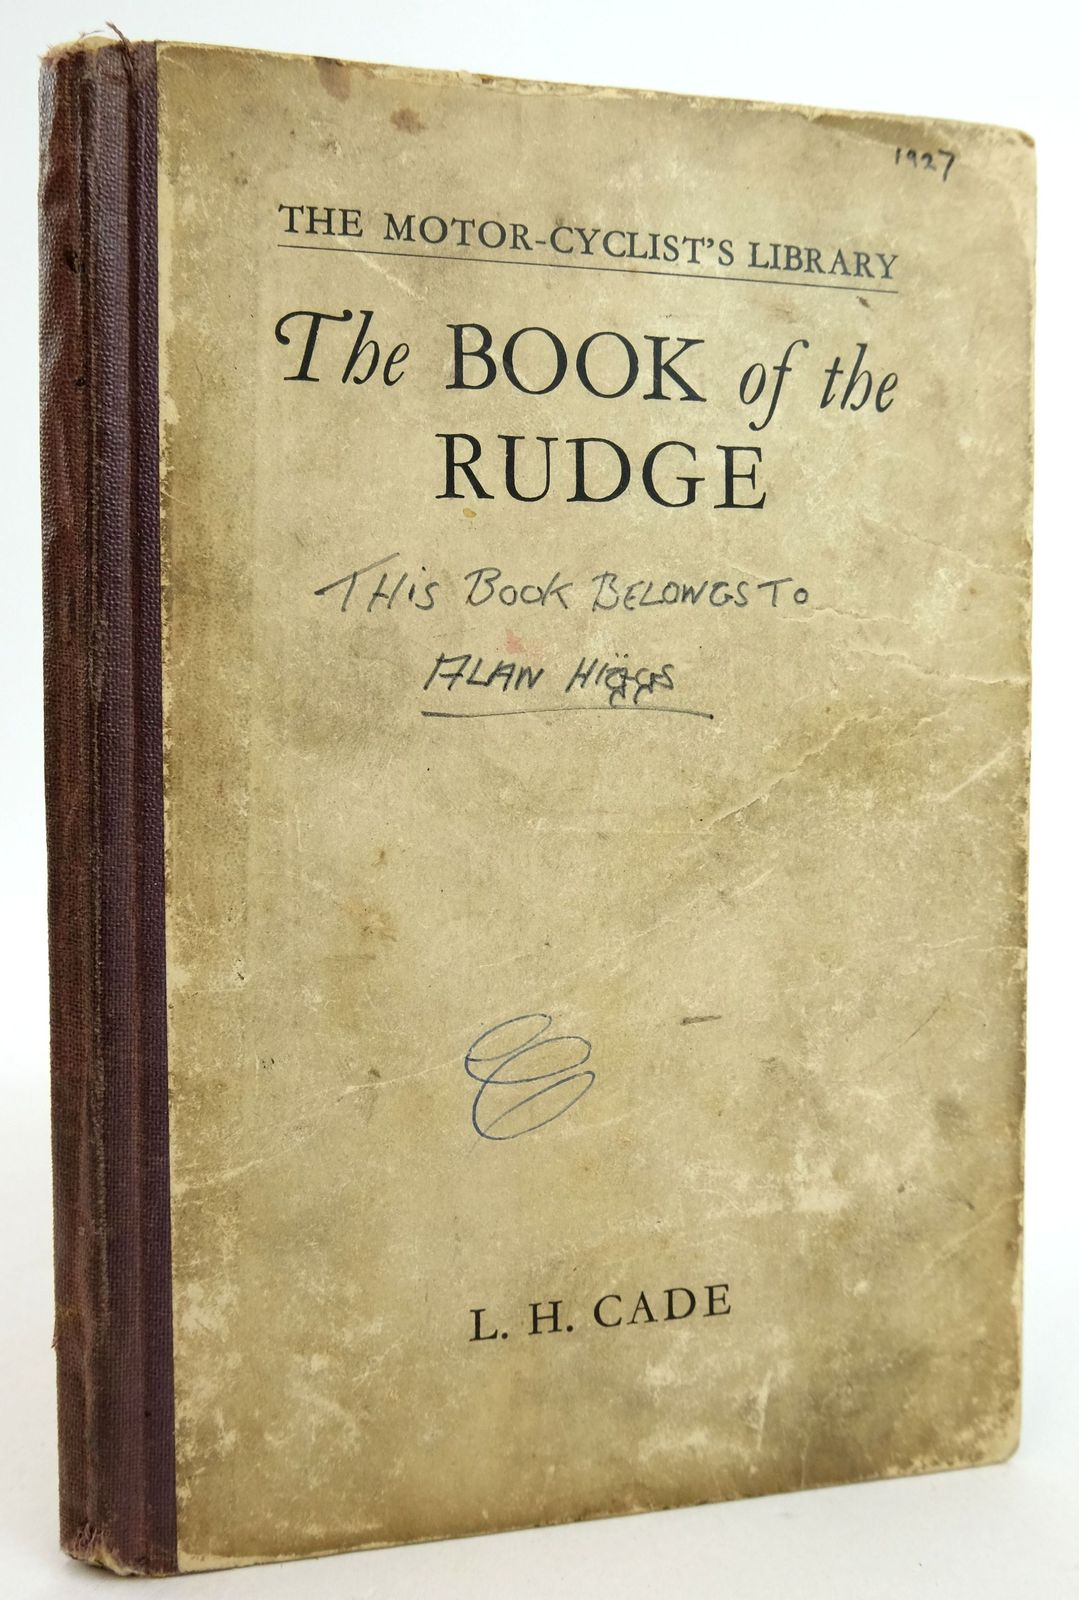 Photo of THE BOOK OF THE RUDGE written by Cade, Laurence H. Anstey, F. Haycraft, W.C. published by Sir Isaac Pitman (STOCK CODE: 1819808)  for sale by Stella & Rose's Books